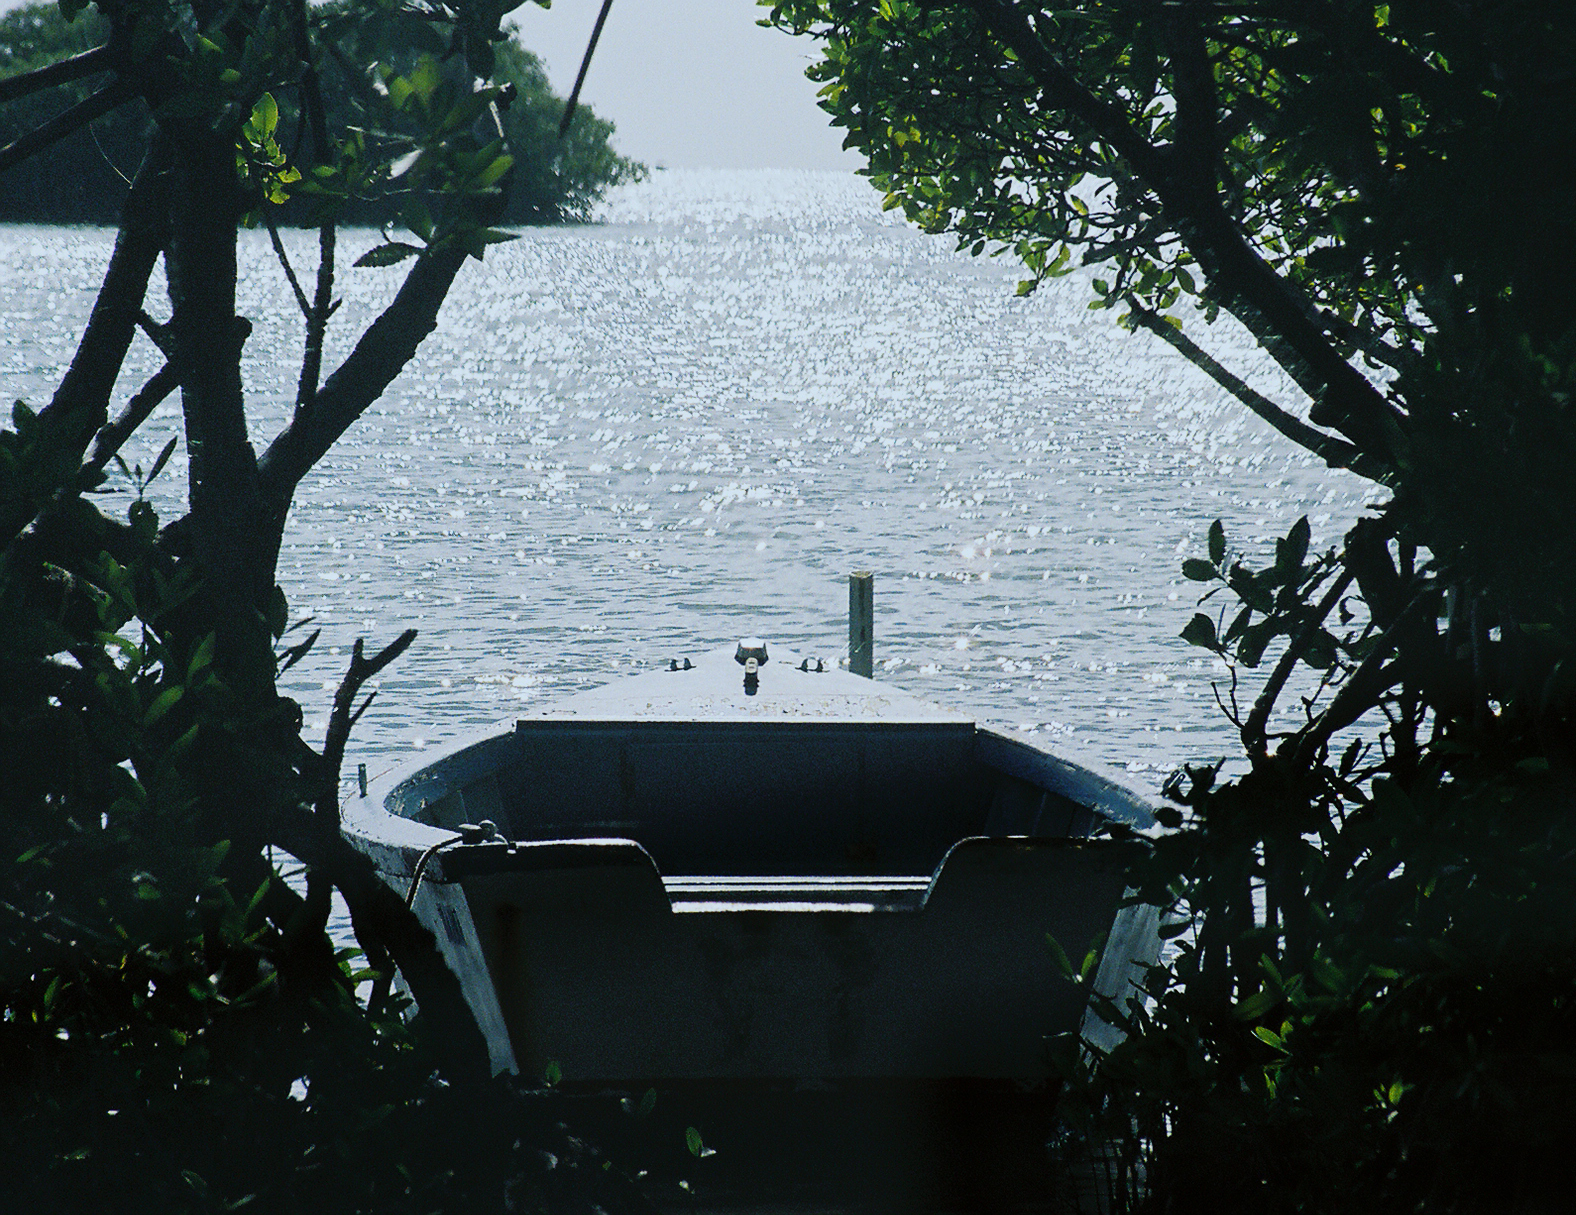 Hidden launch, Boat, Hidden, Lake, Mangrove, HQ Photo